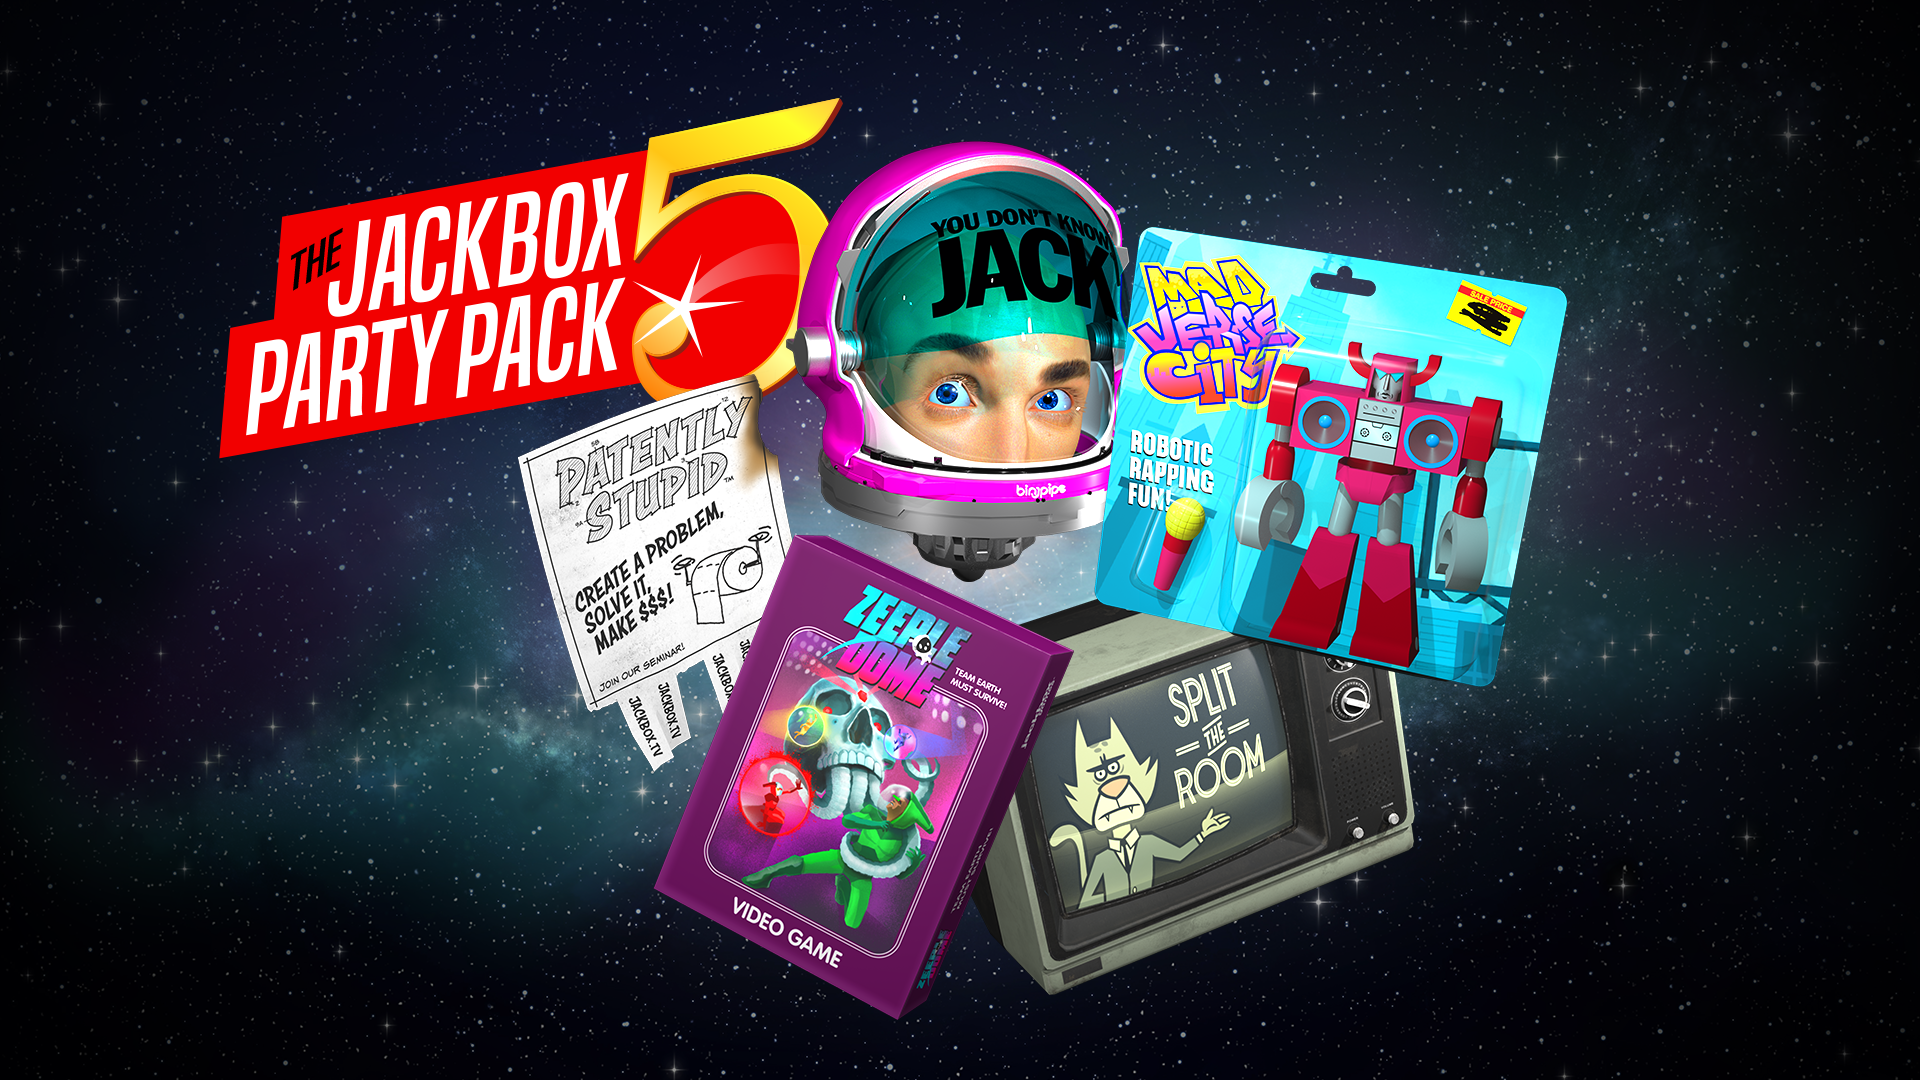 Zeeple Dome: Goopledorps achievement for The Jackbox Party Pack 5 on Xbox One